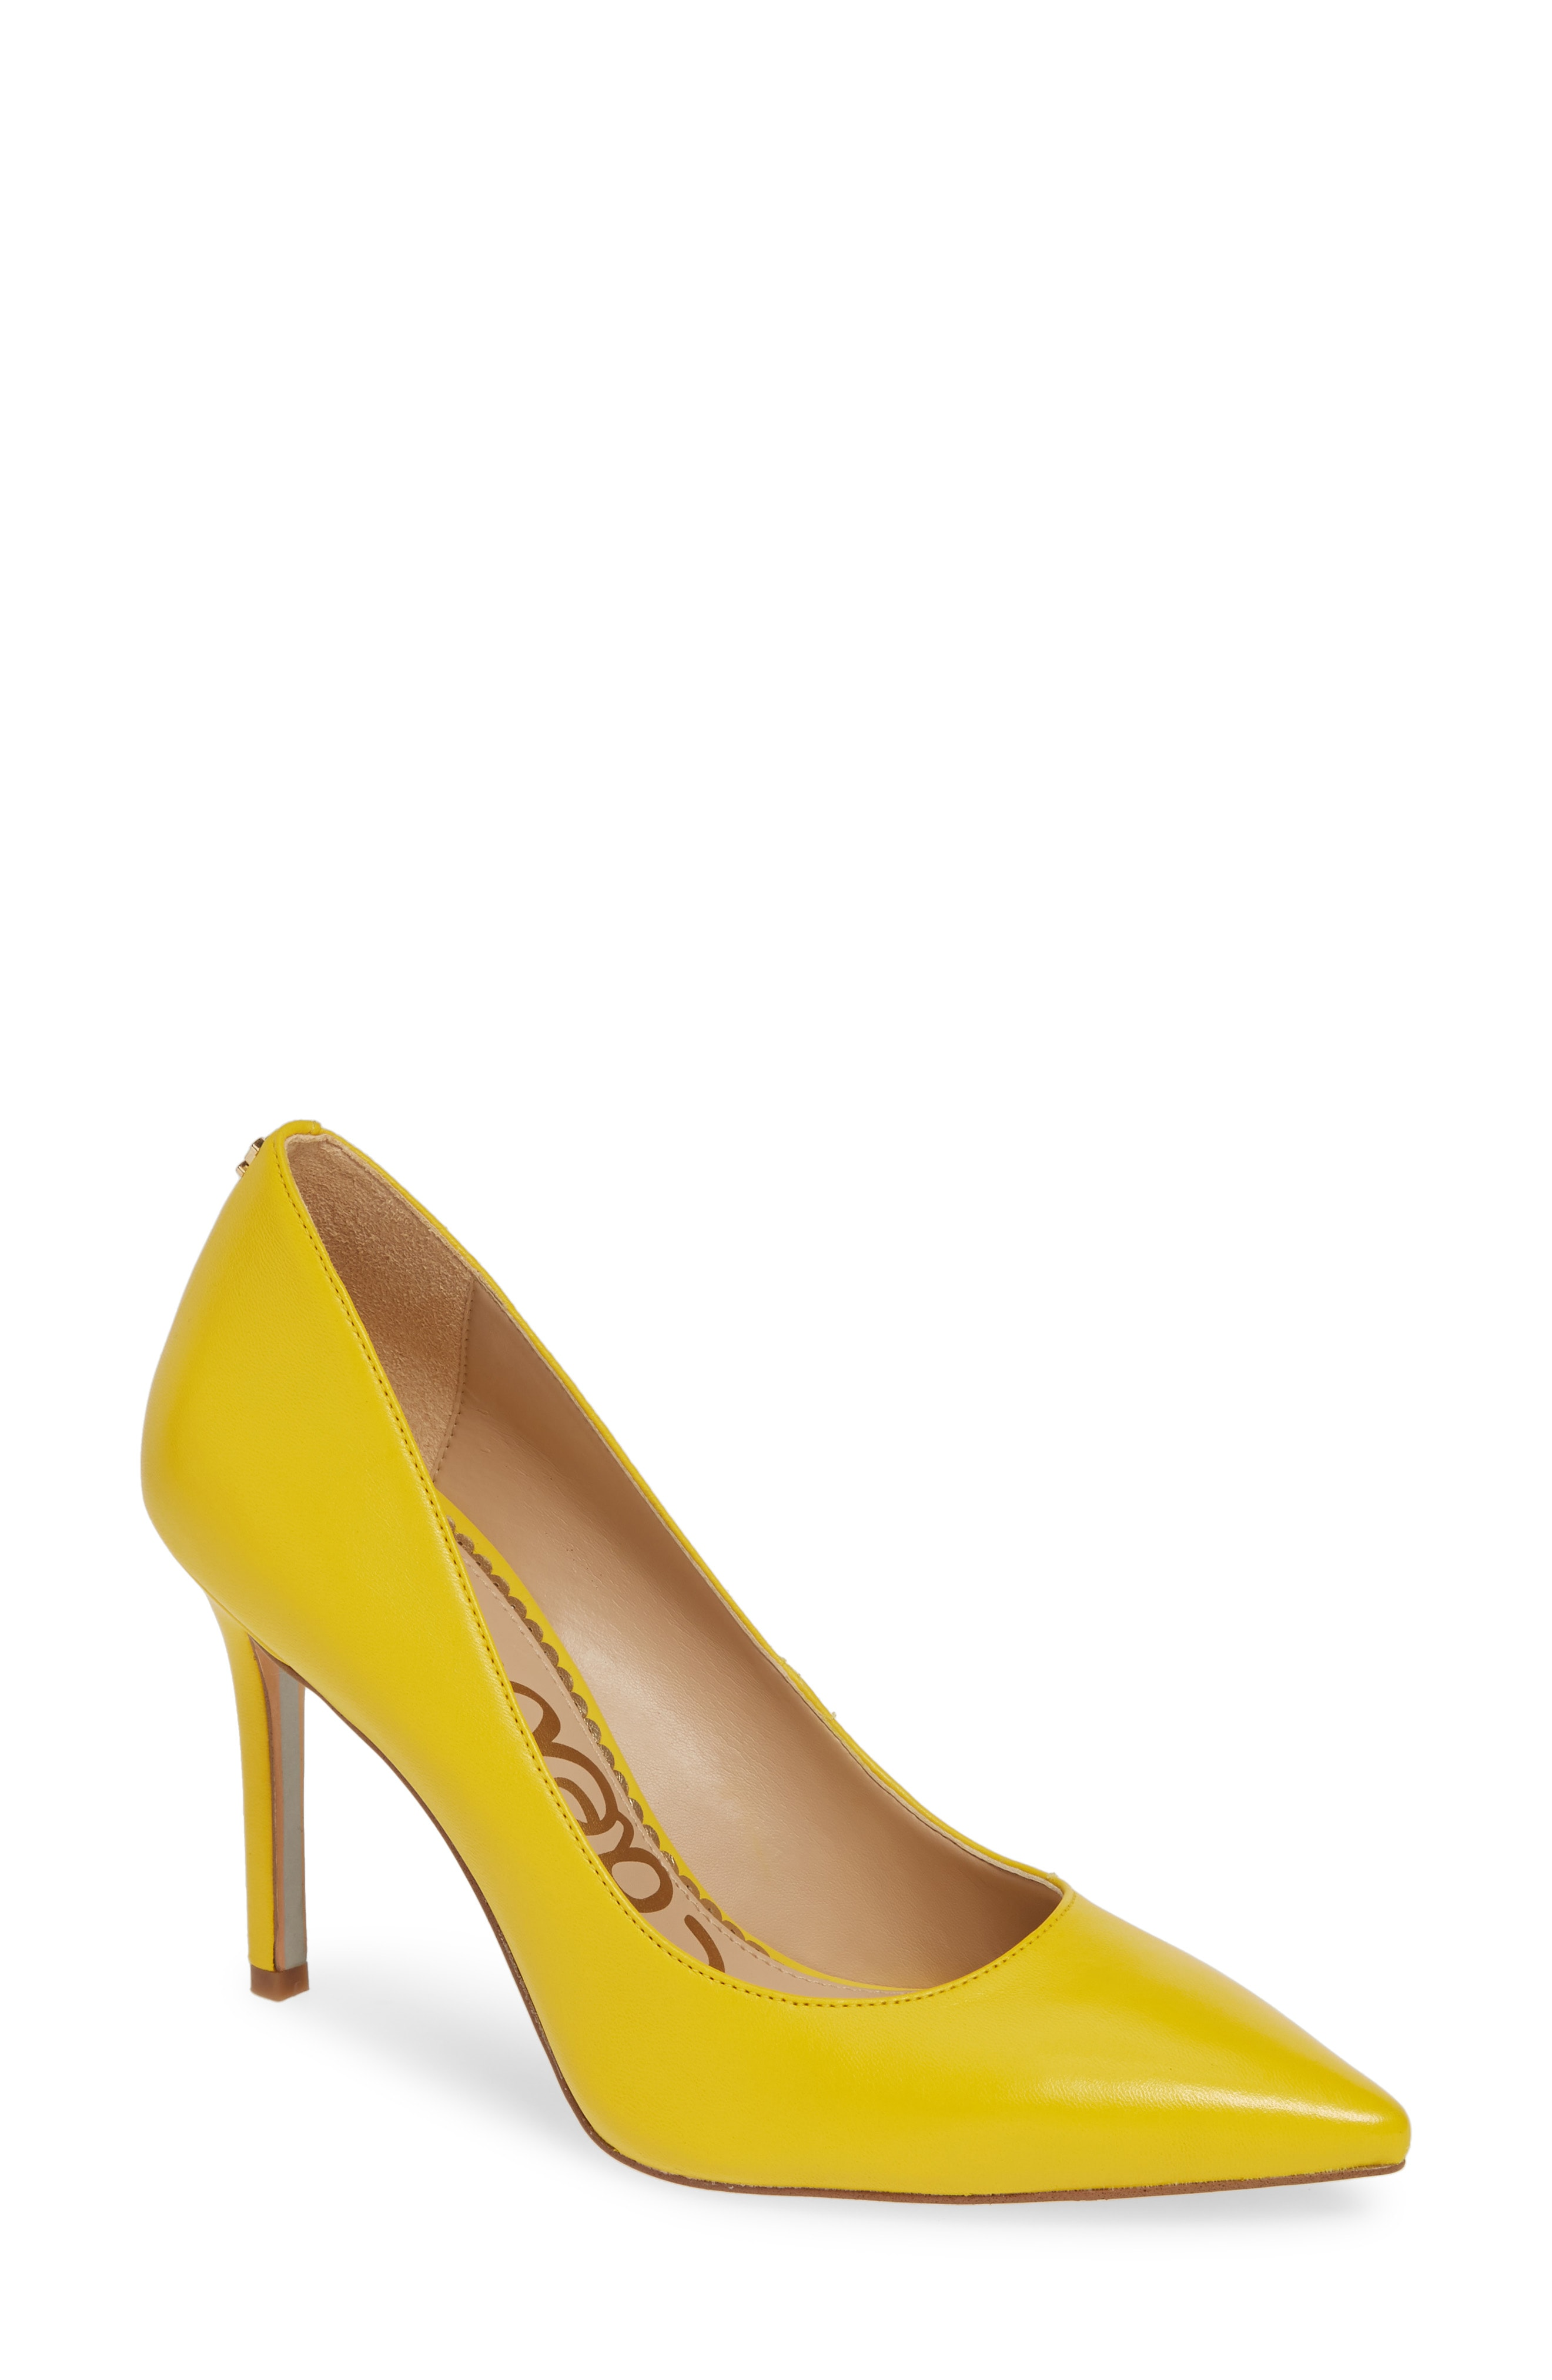 Women's Yellow Shoes   Nordstrom